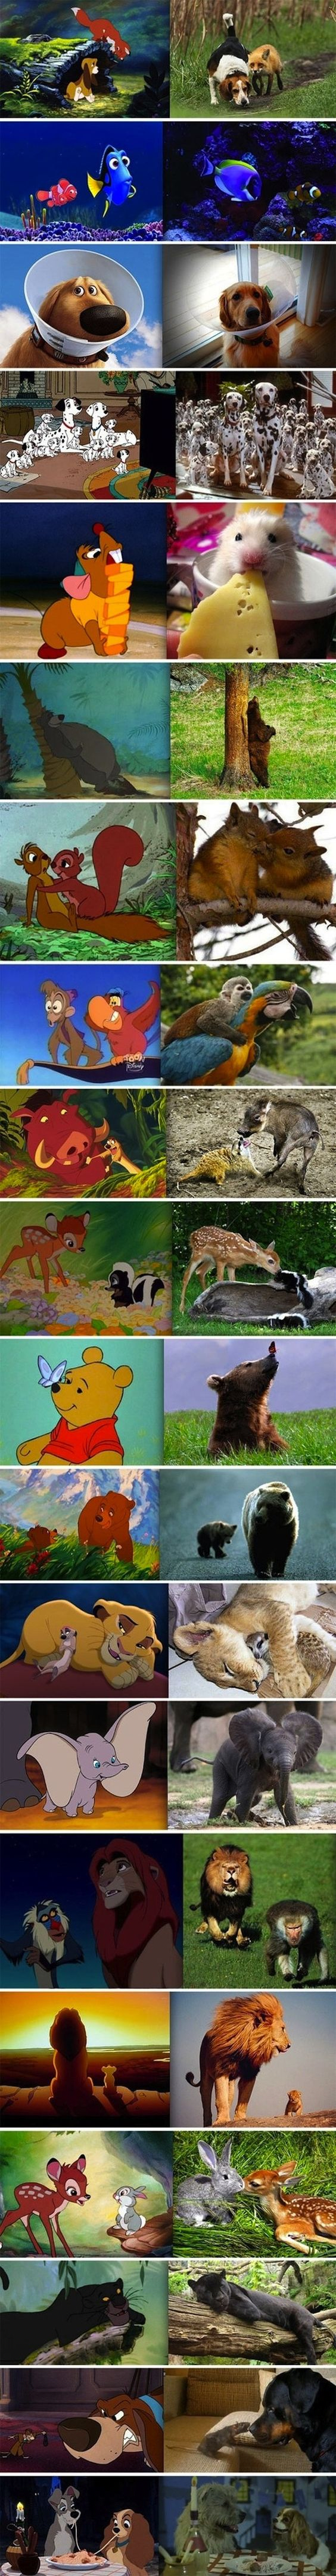 Disney Characters in Real Life | Things for Geeks